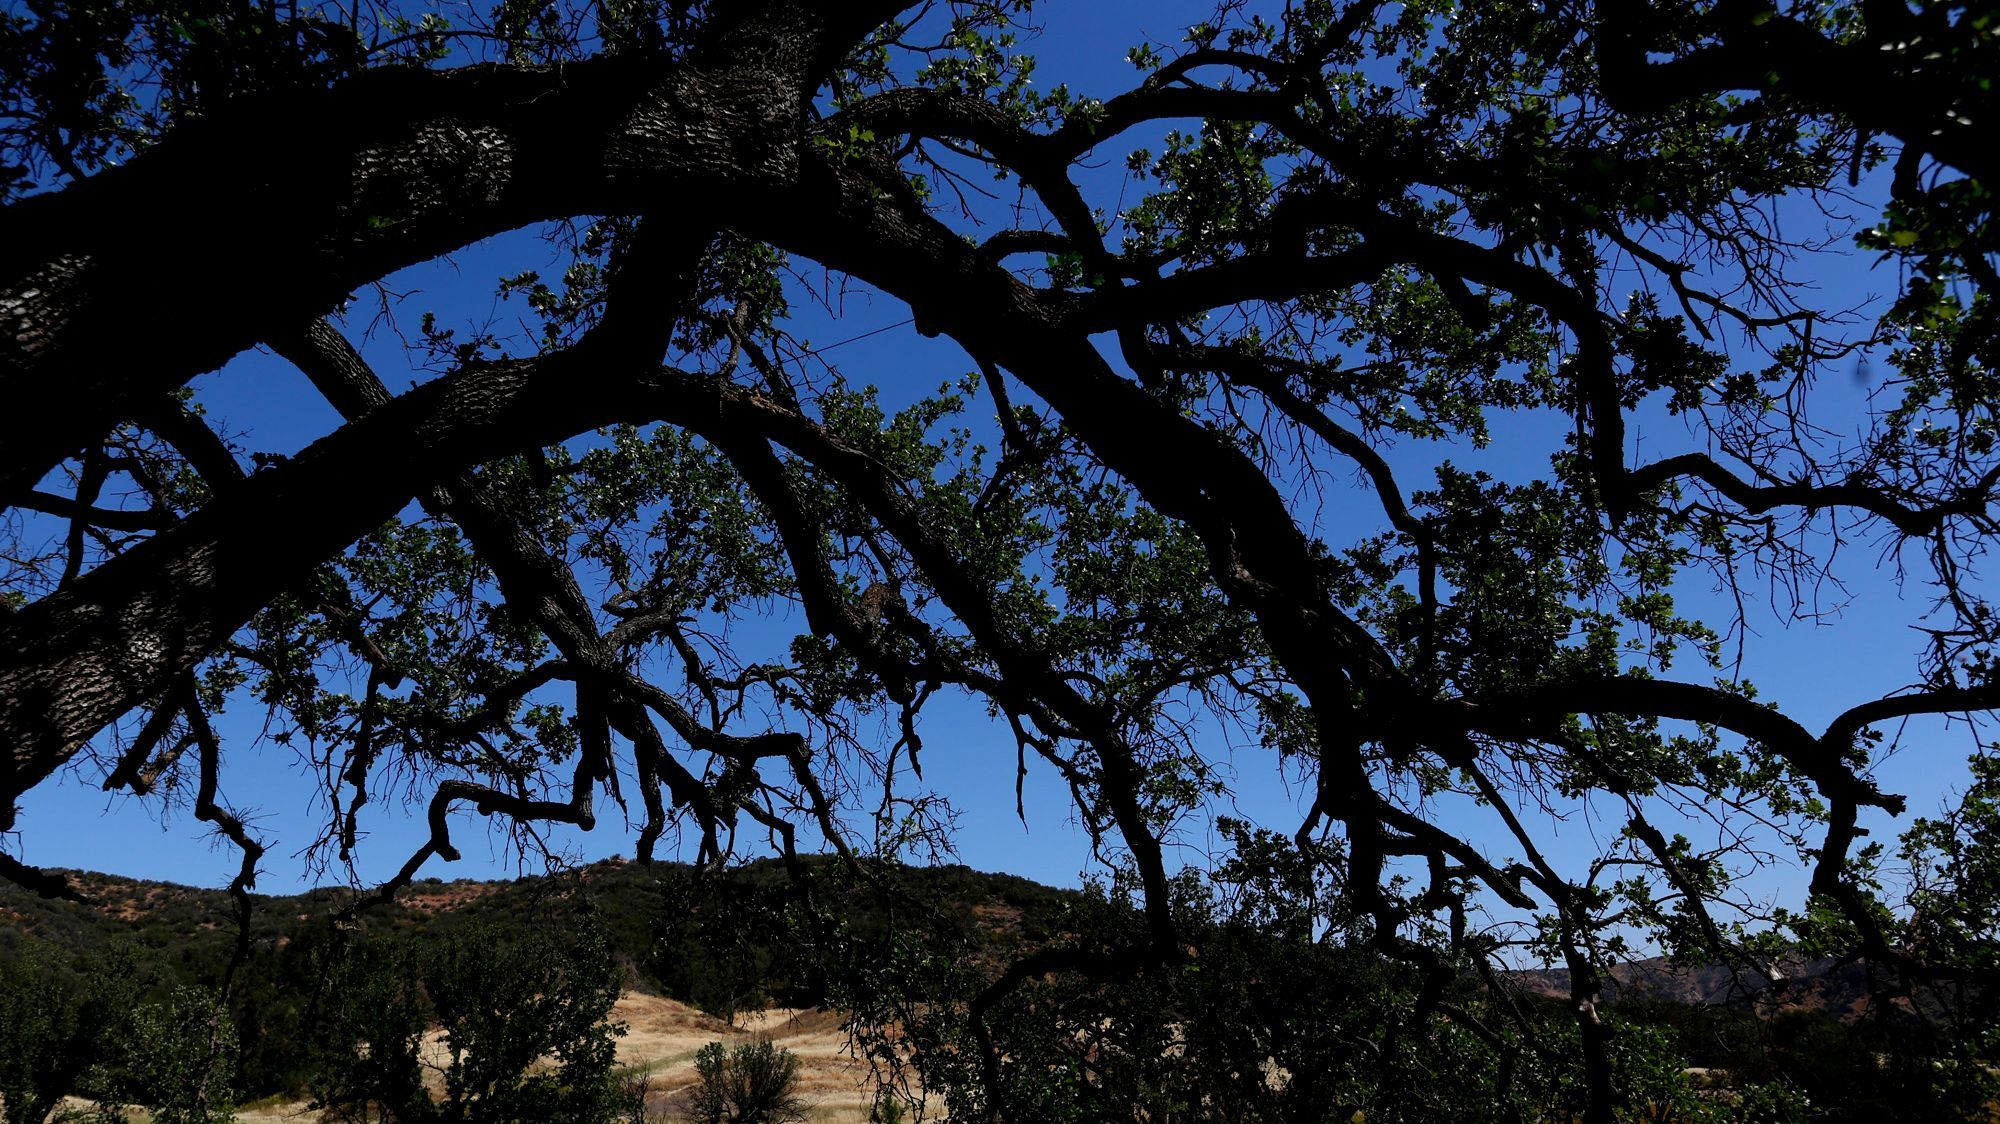 An oak tree in the Witches Wood, in the foreground, at Paramount Ranch.